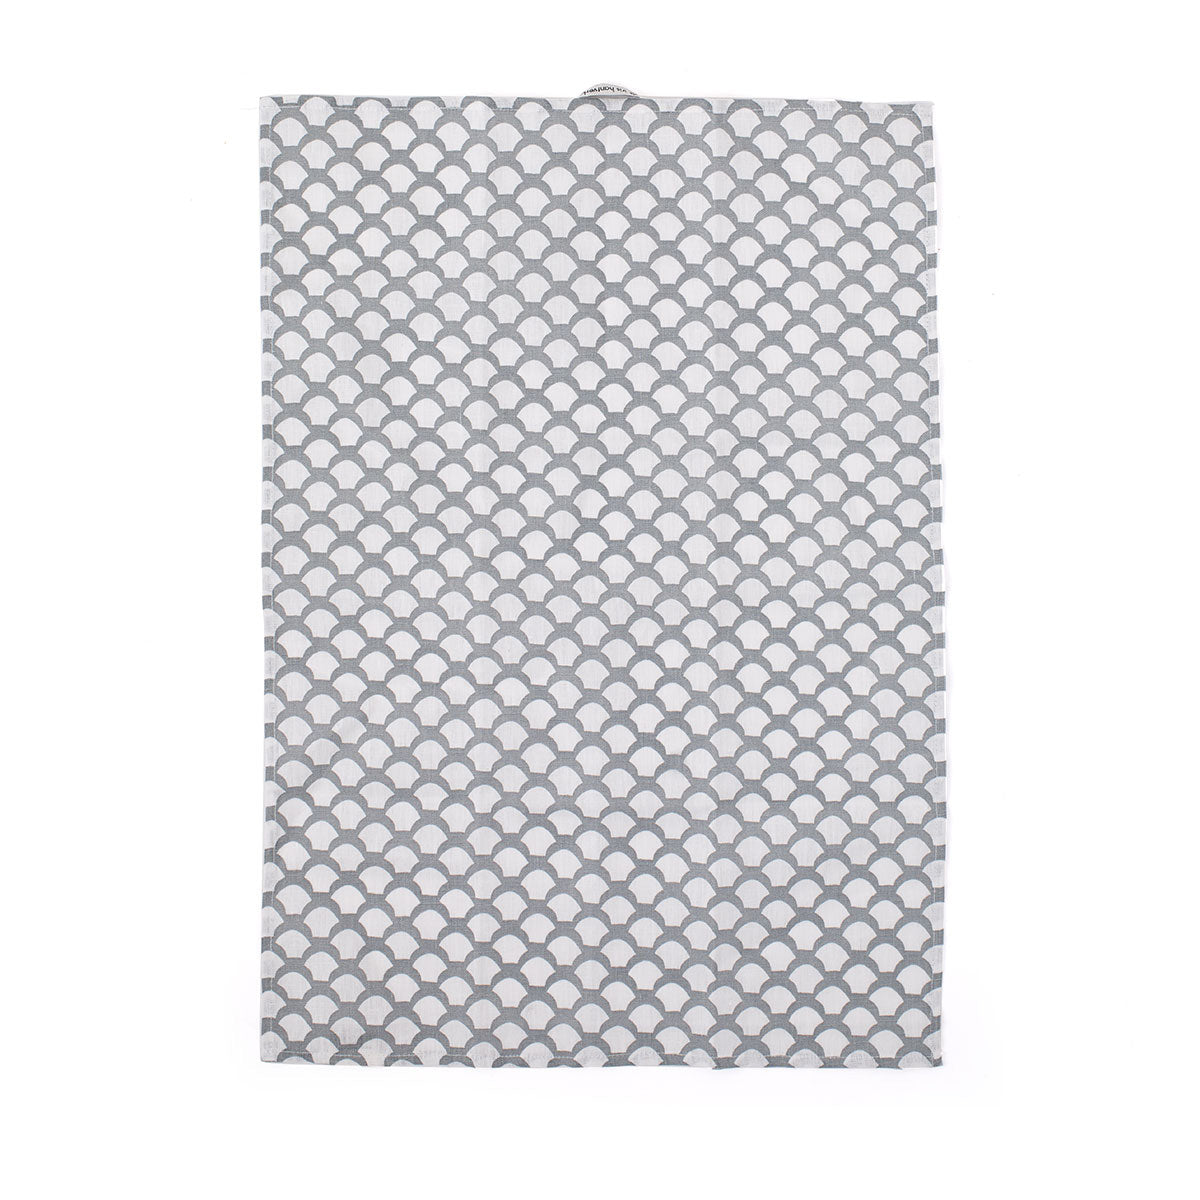 Iris Hantverk Pure Linen Tea Towel in Saras Roof - Neutral Grey | Traditional Nordic Pattern | Slow Living | Authentic Living | Nordic Influence | Grey and White | Swedish Design - Scandinavian Living - Tea Towel